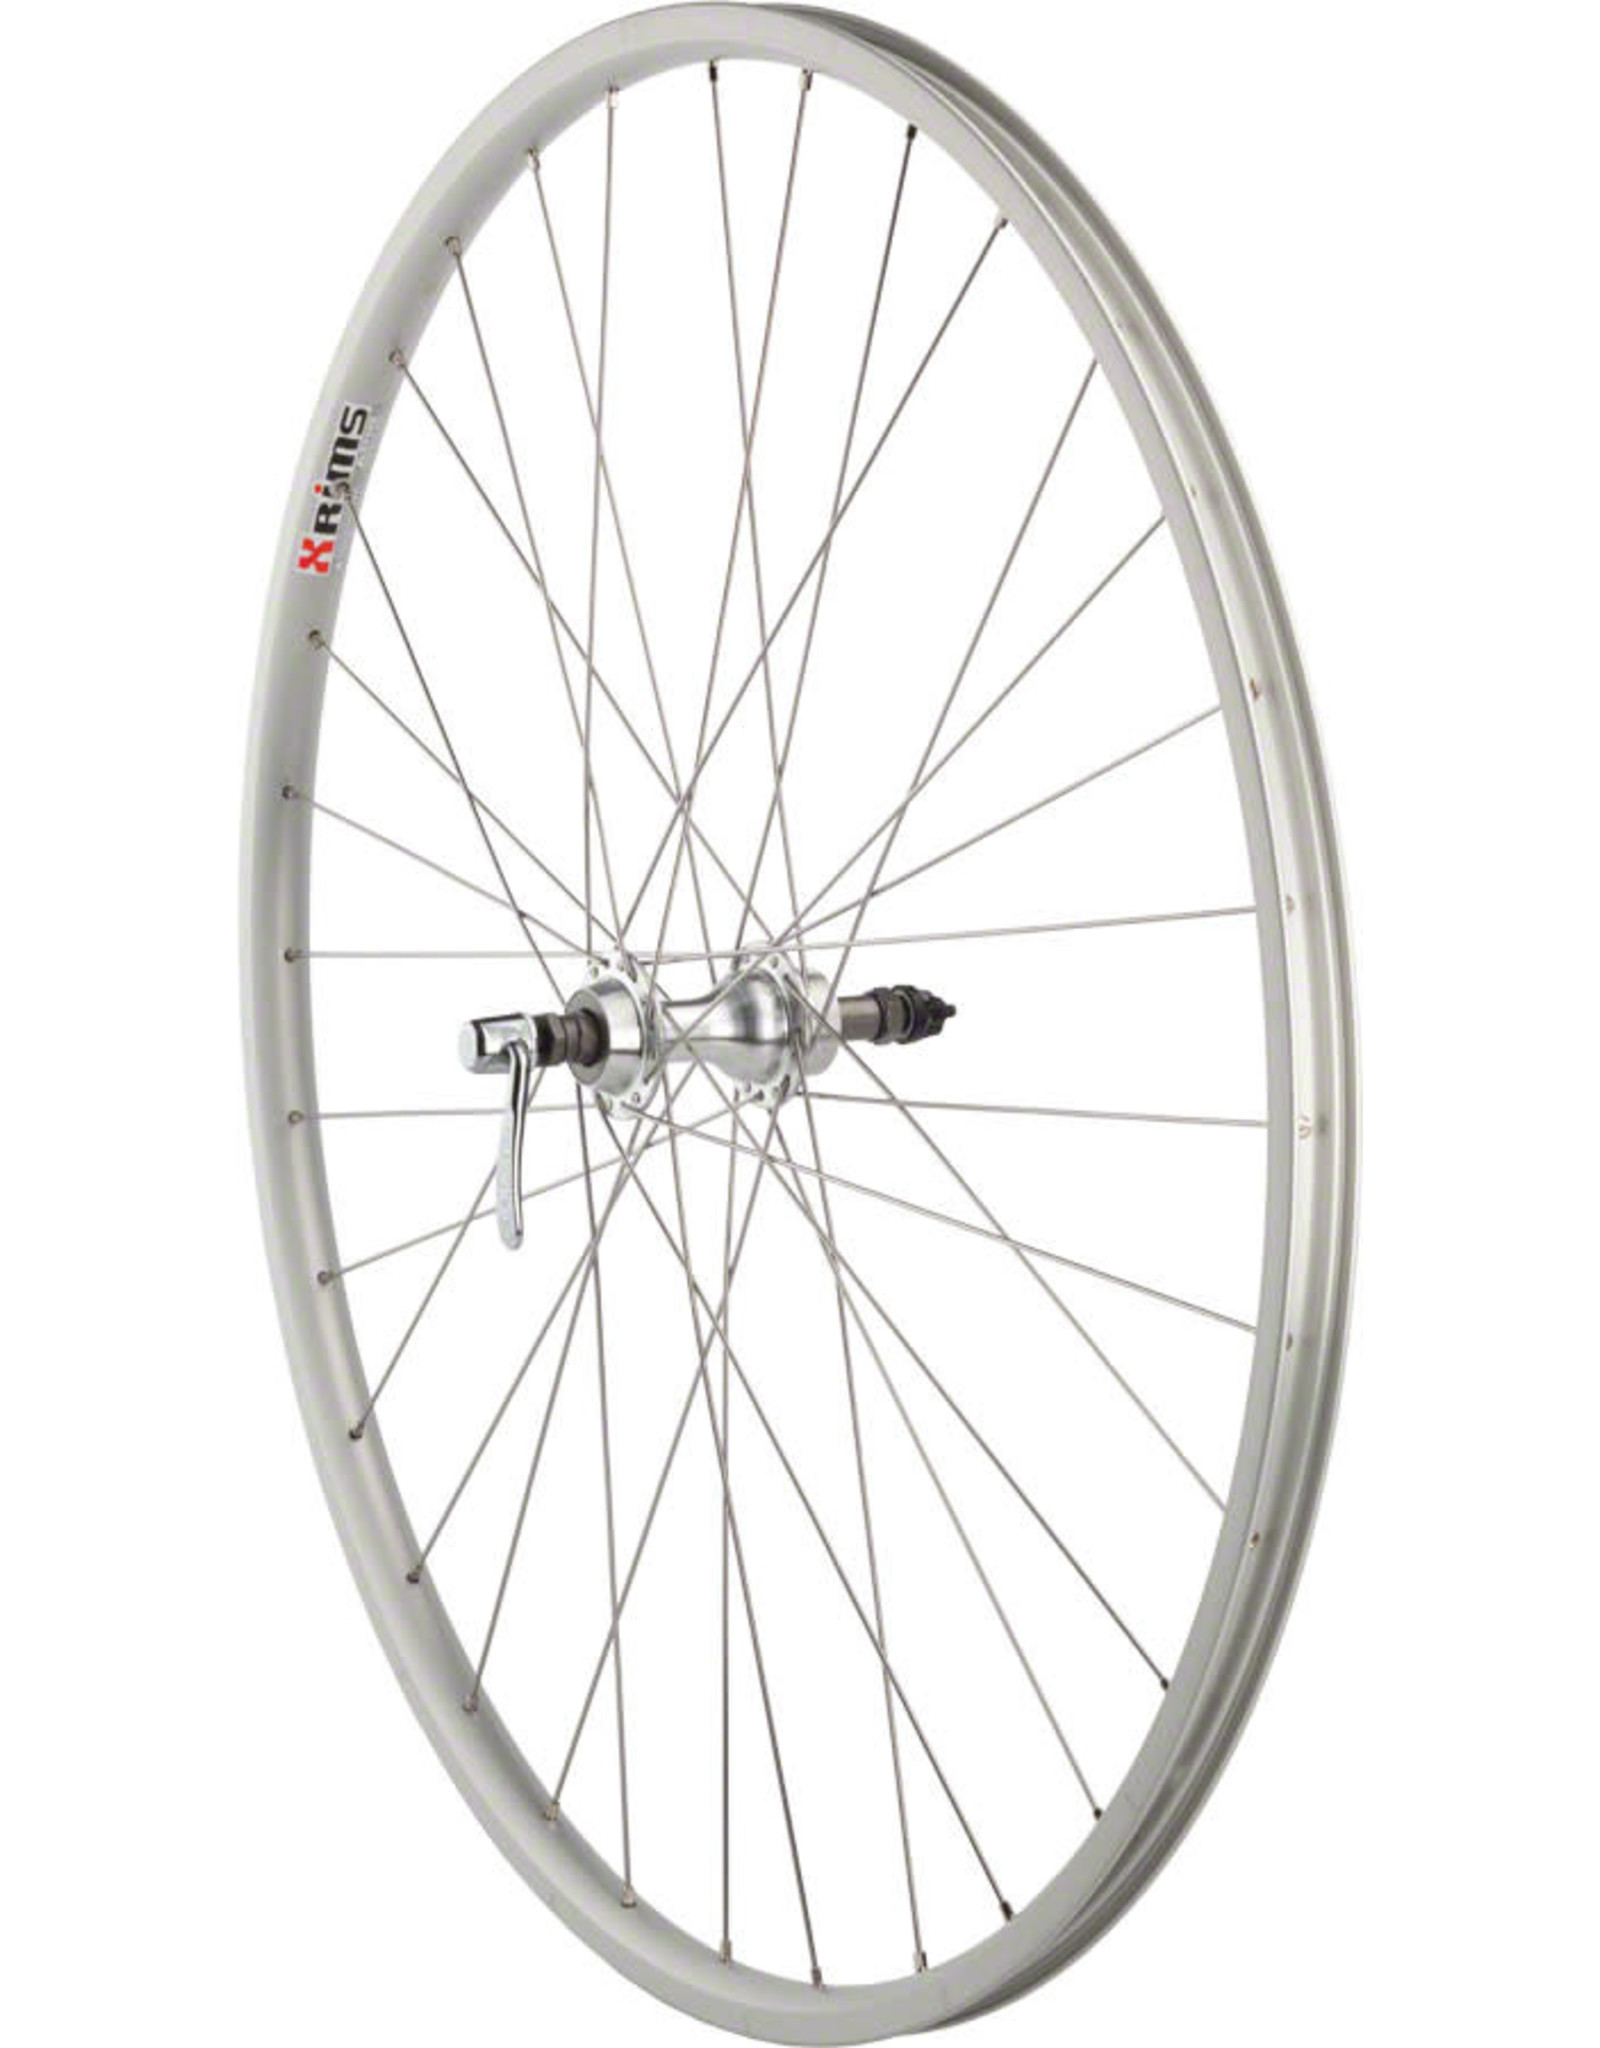 "Dimension Dimension Value Series 1 Rear Wheel 27"" Formula 130mm Freewheel / Alex AP18 Silver"